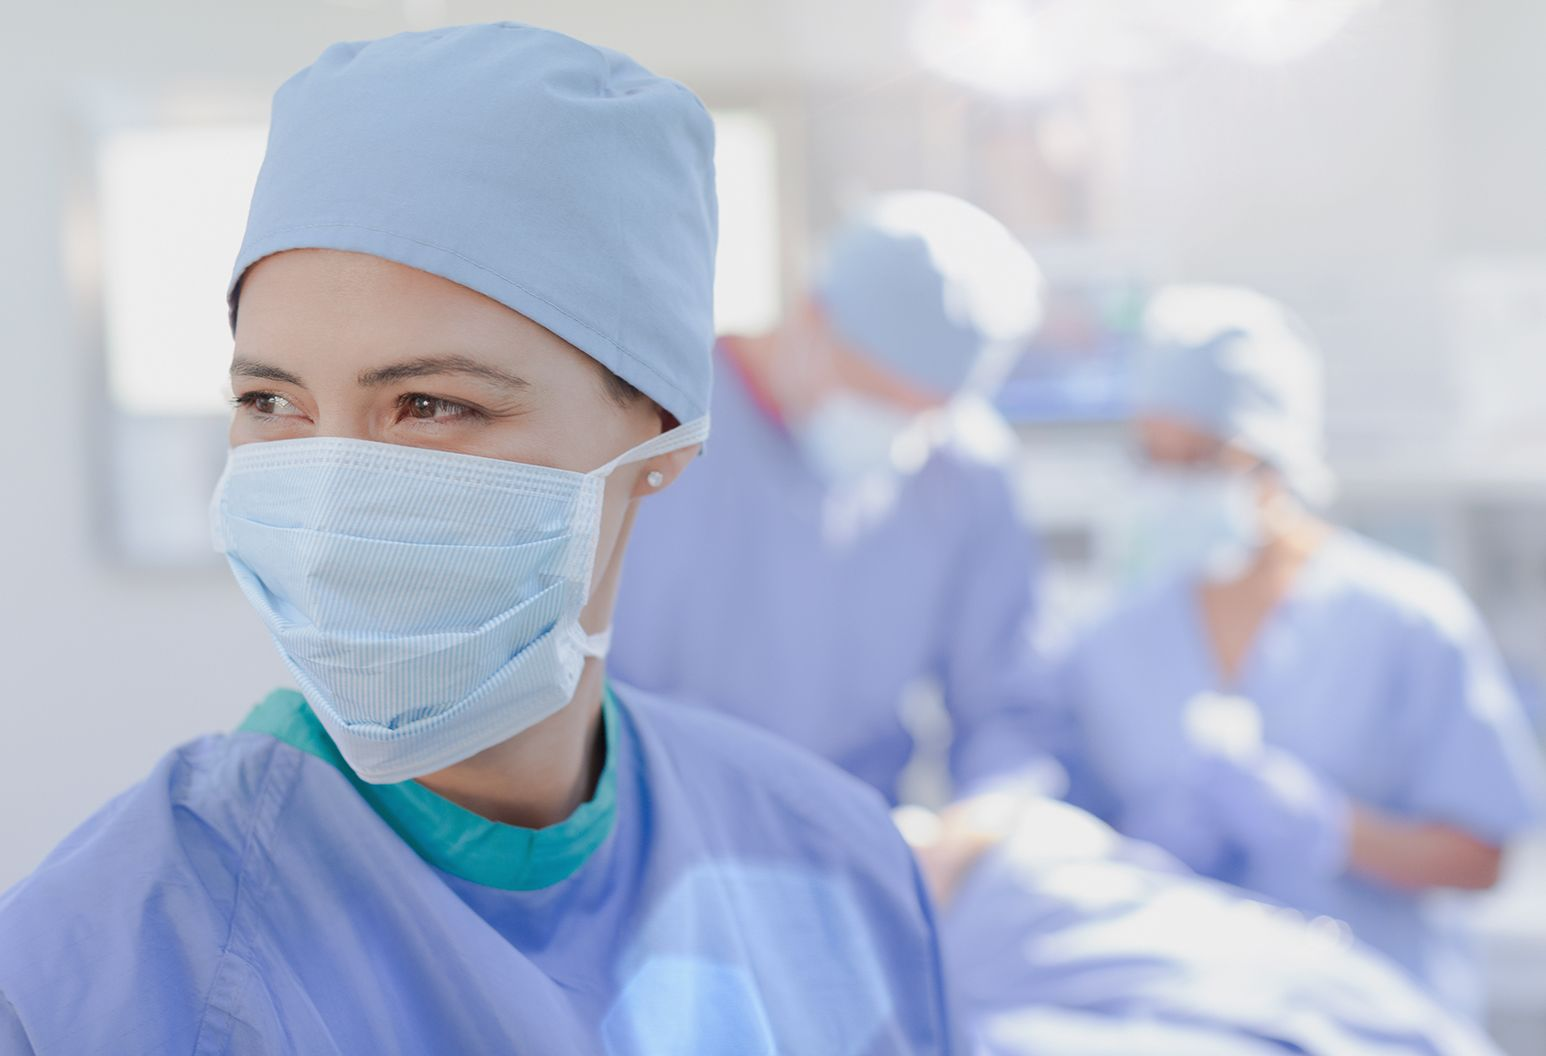 Smiling female surgeon wearing surgical mask in operating room